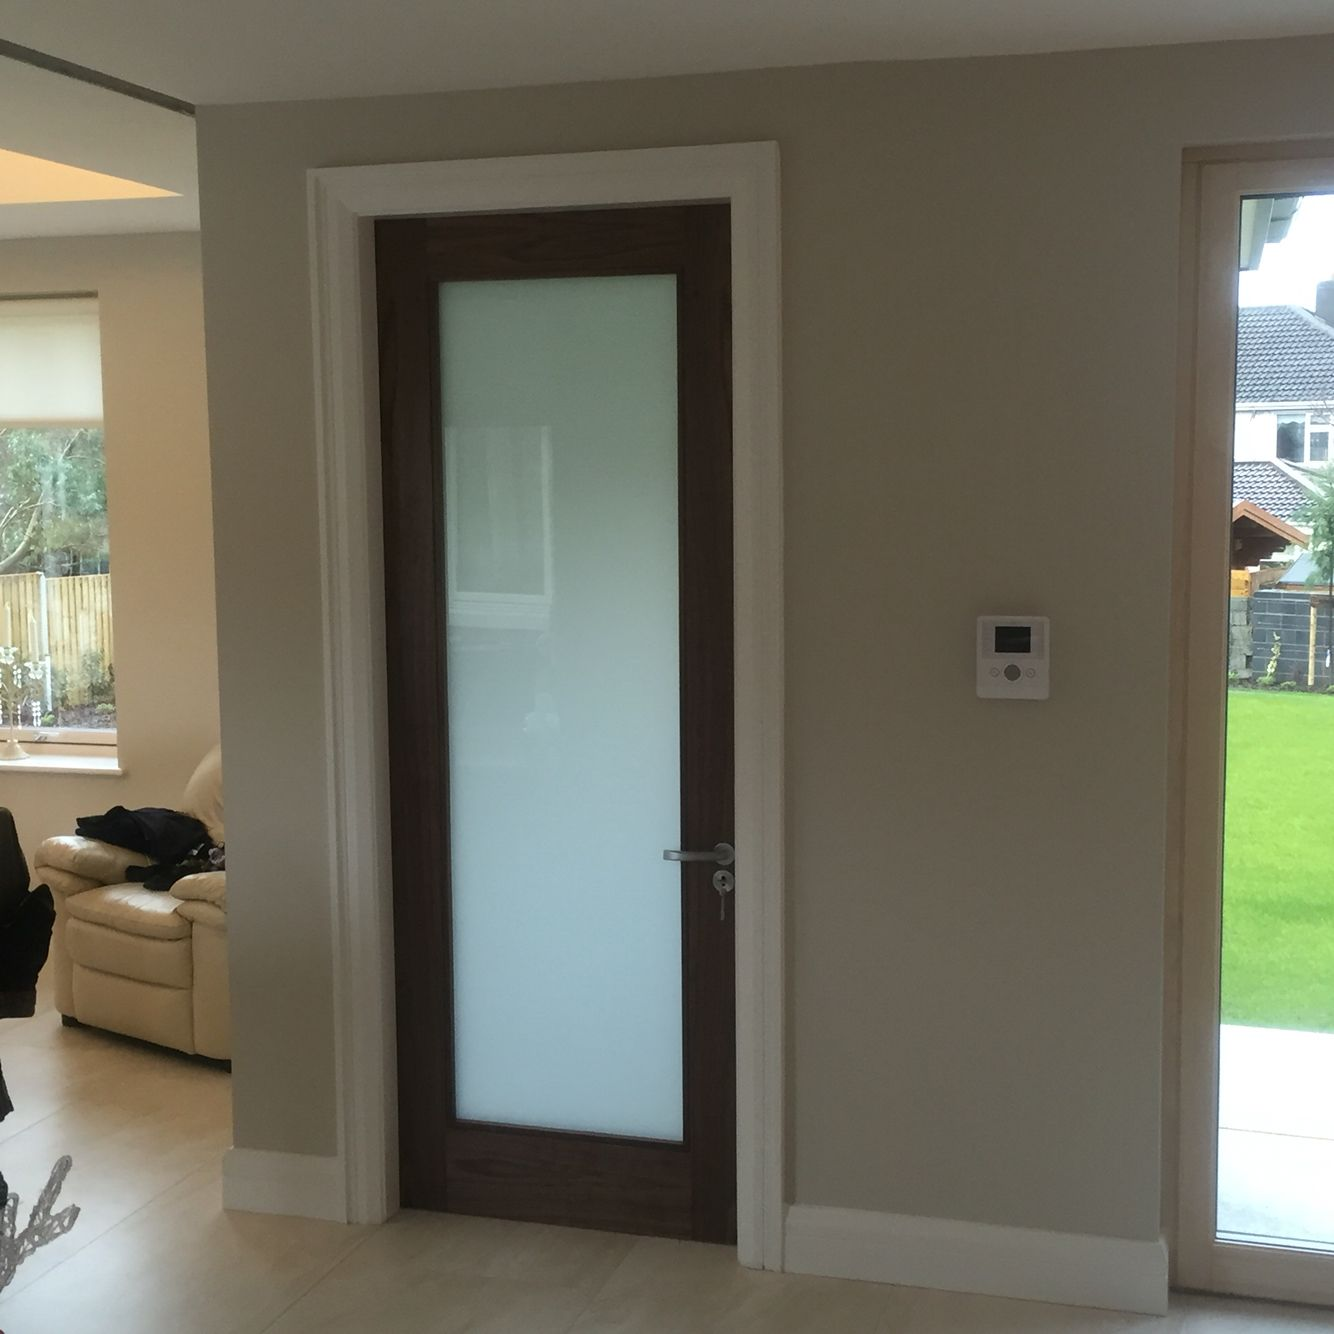 Walnut Internal Door With Frosted Glass Versatility Of Sliding